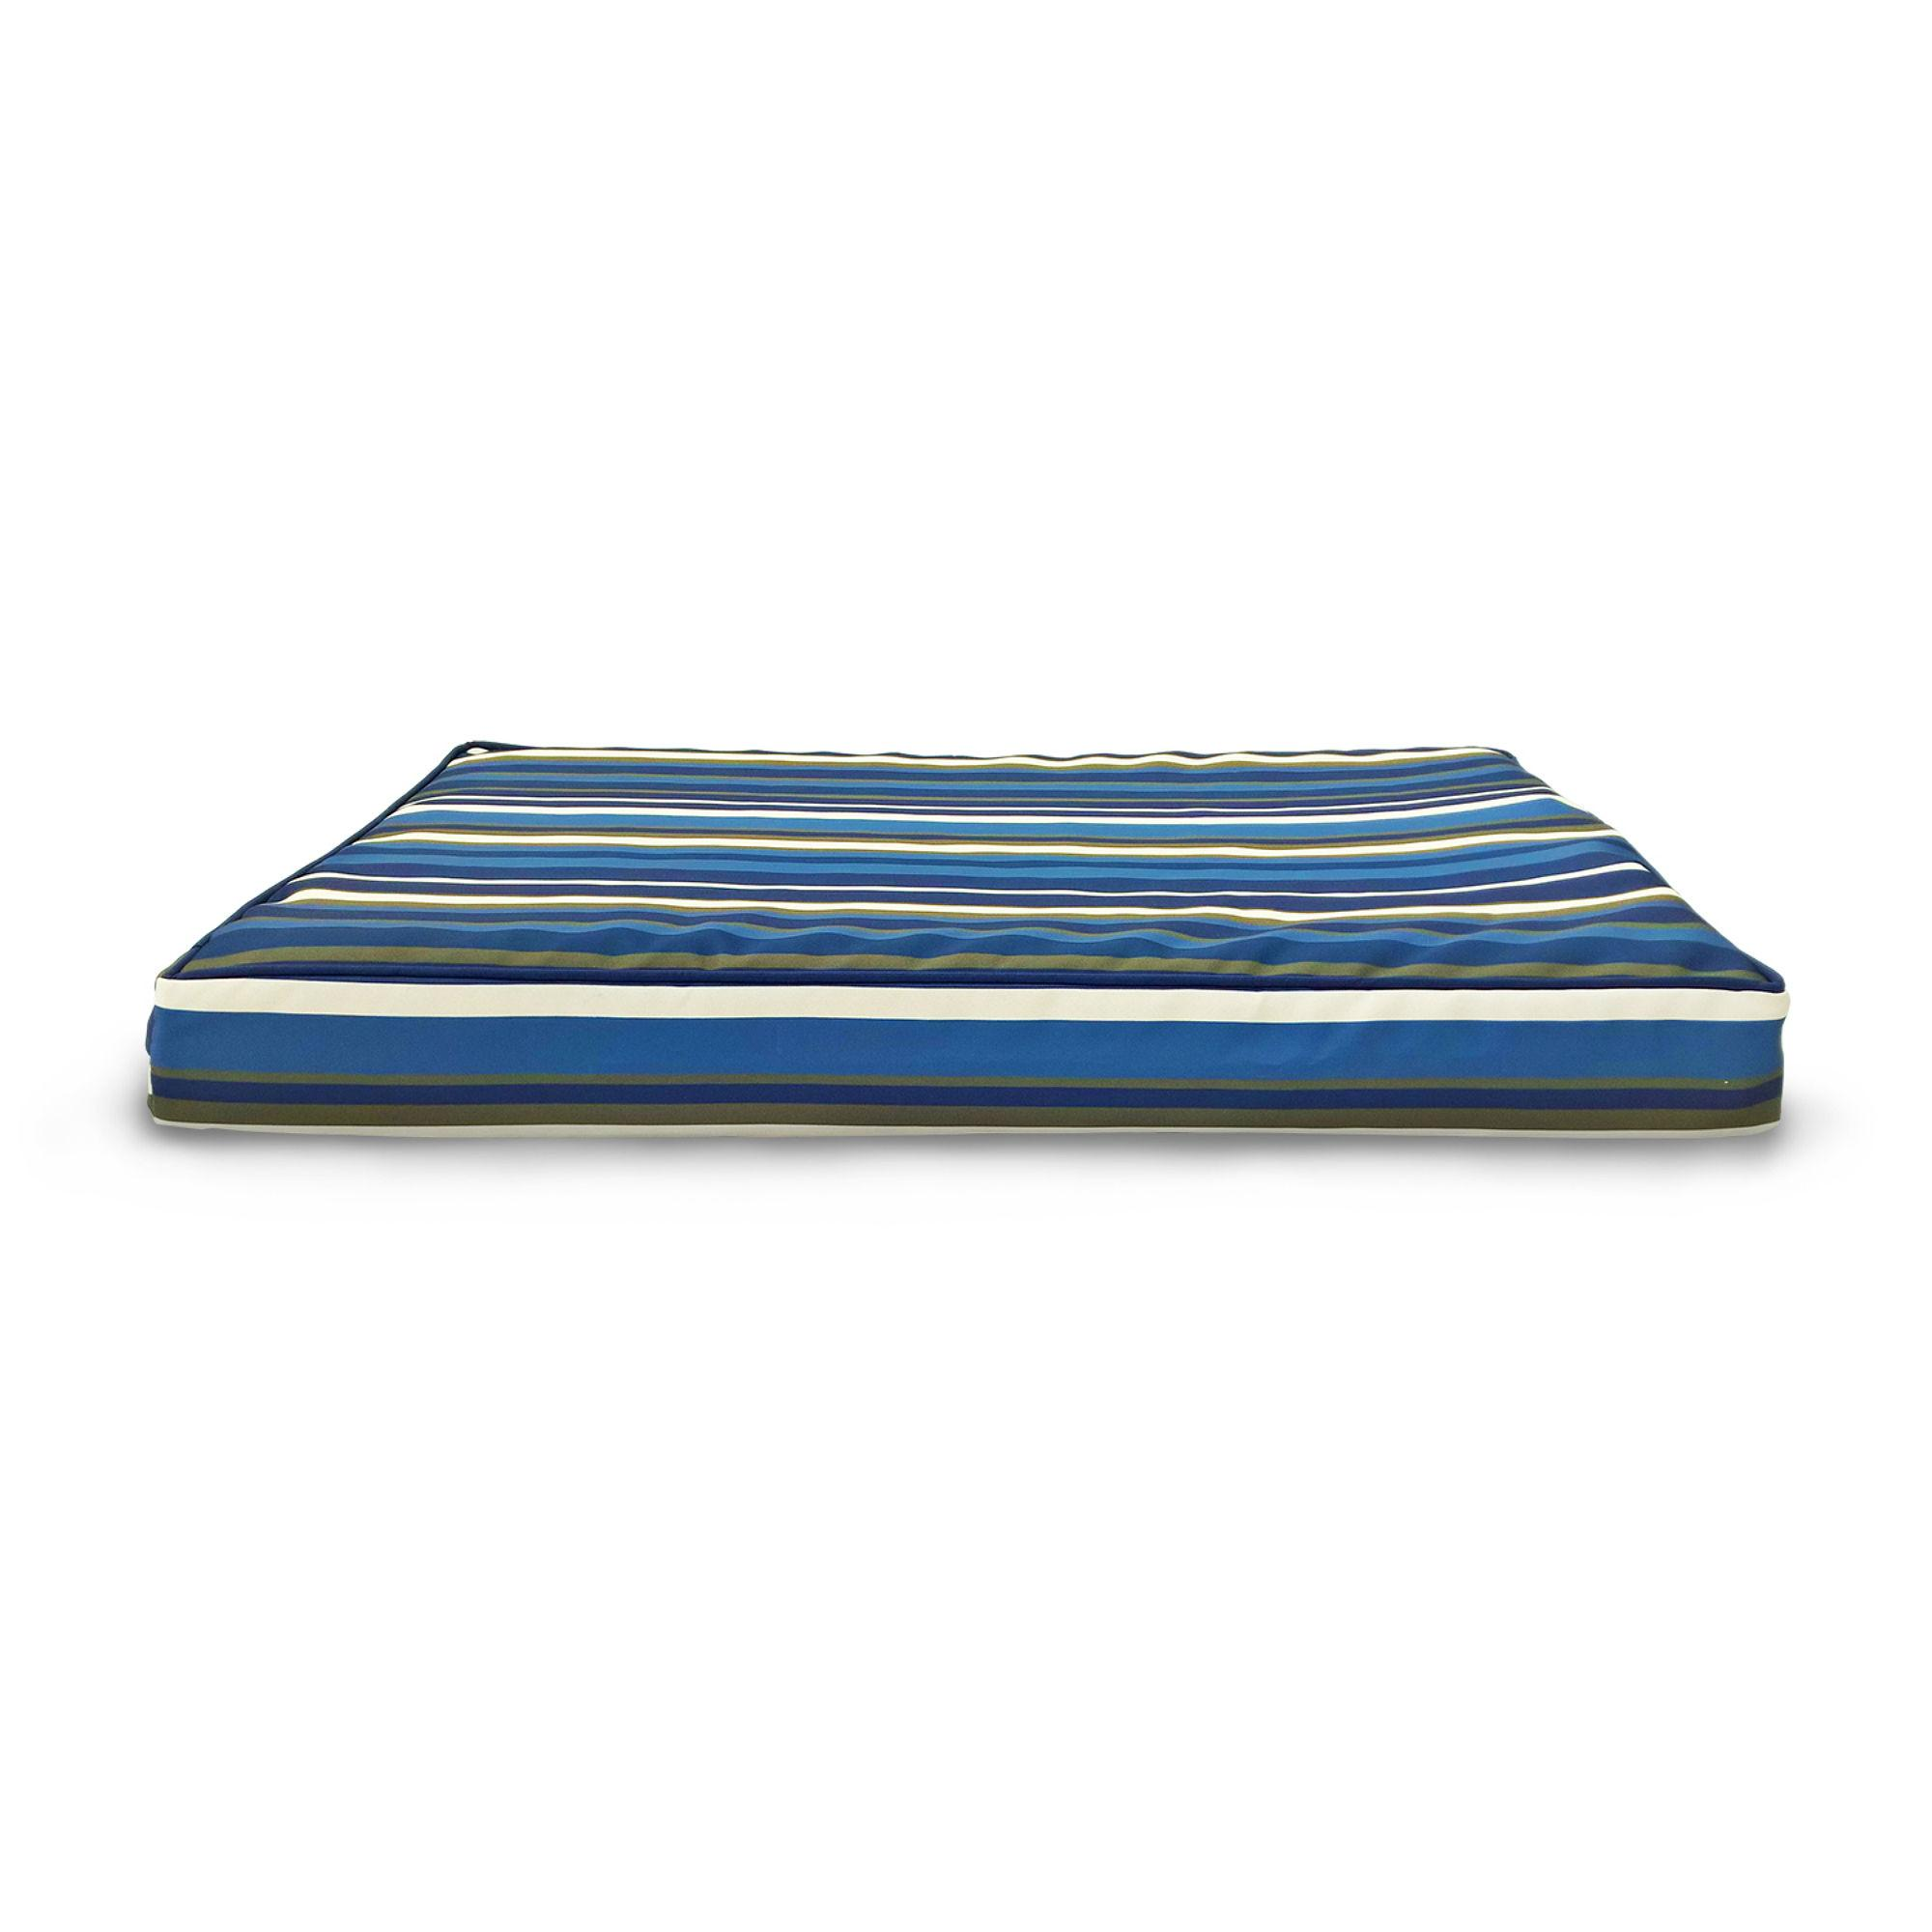 FurHaven Deluxe Indoor/Outdoor Print Orthopedic Pet Bed - Blue